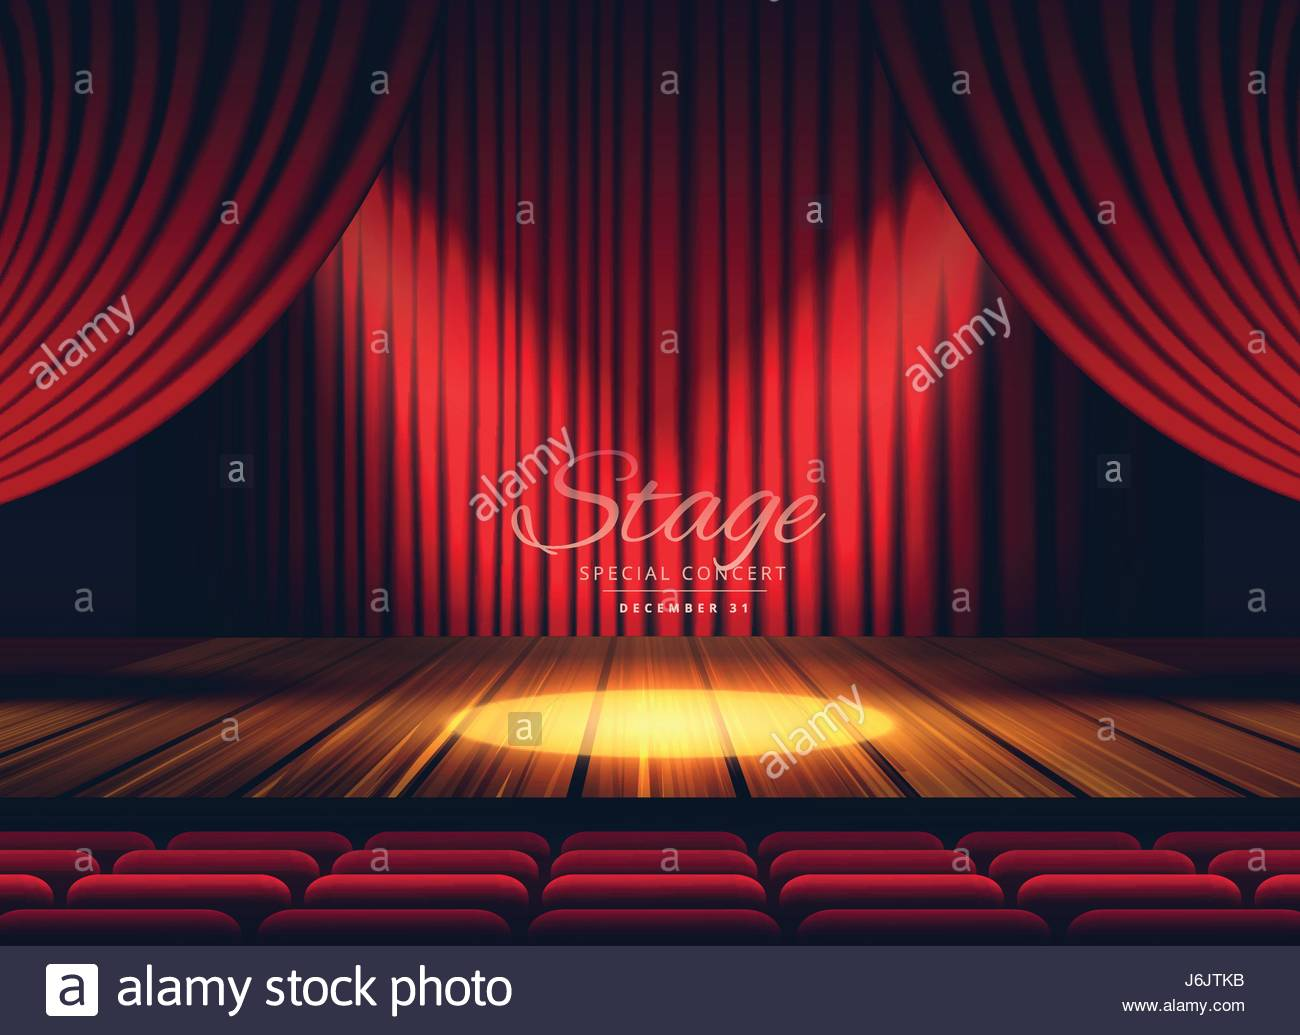 Stage curtains spotlight - Premium Red Curtains Stage Theater Or Opera Background With Spotlight Stock Image